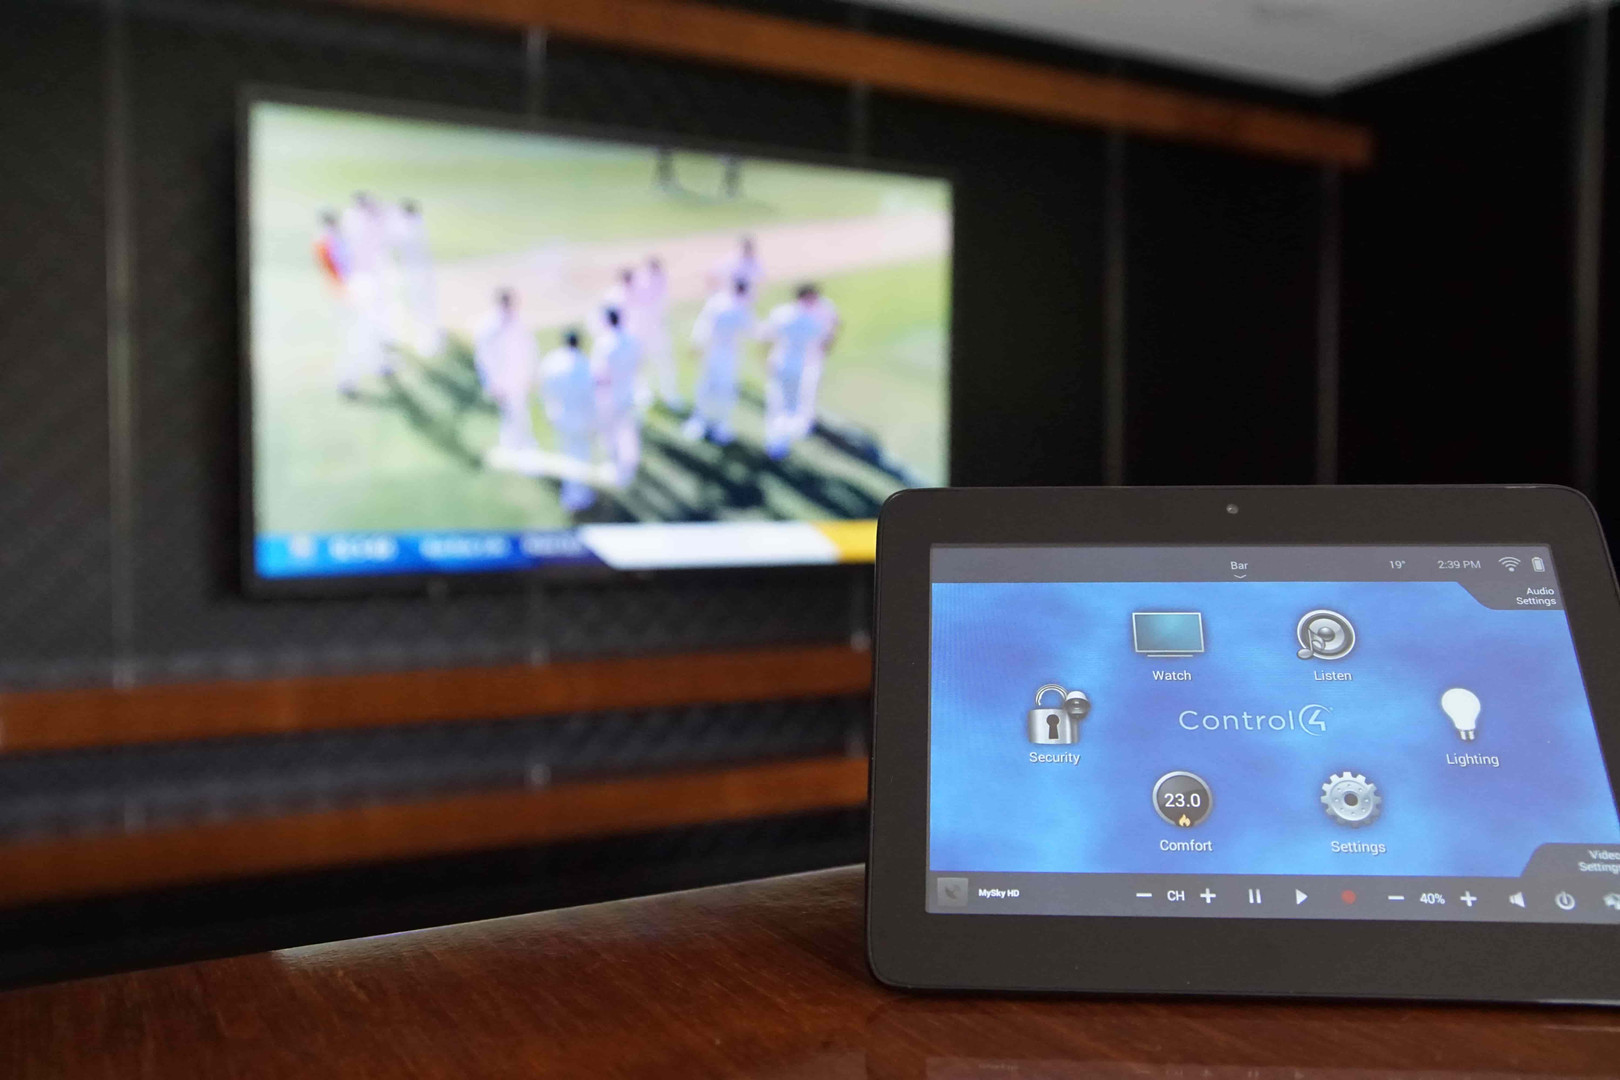 Control4 touch screen and TV at Marshlan